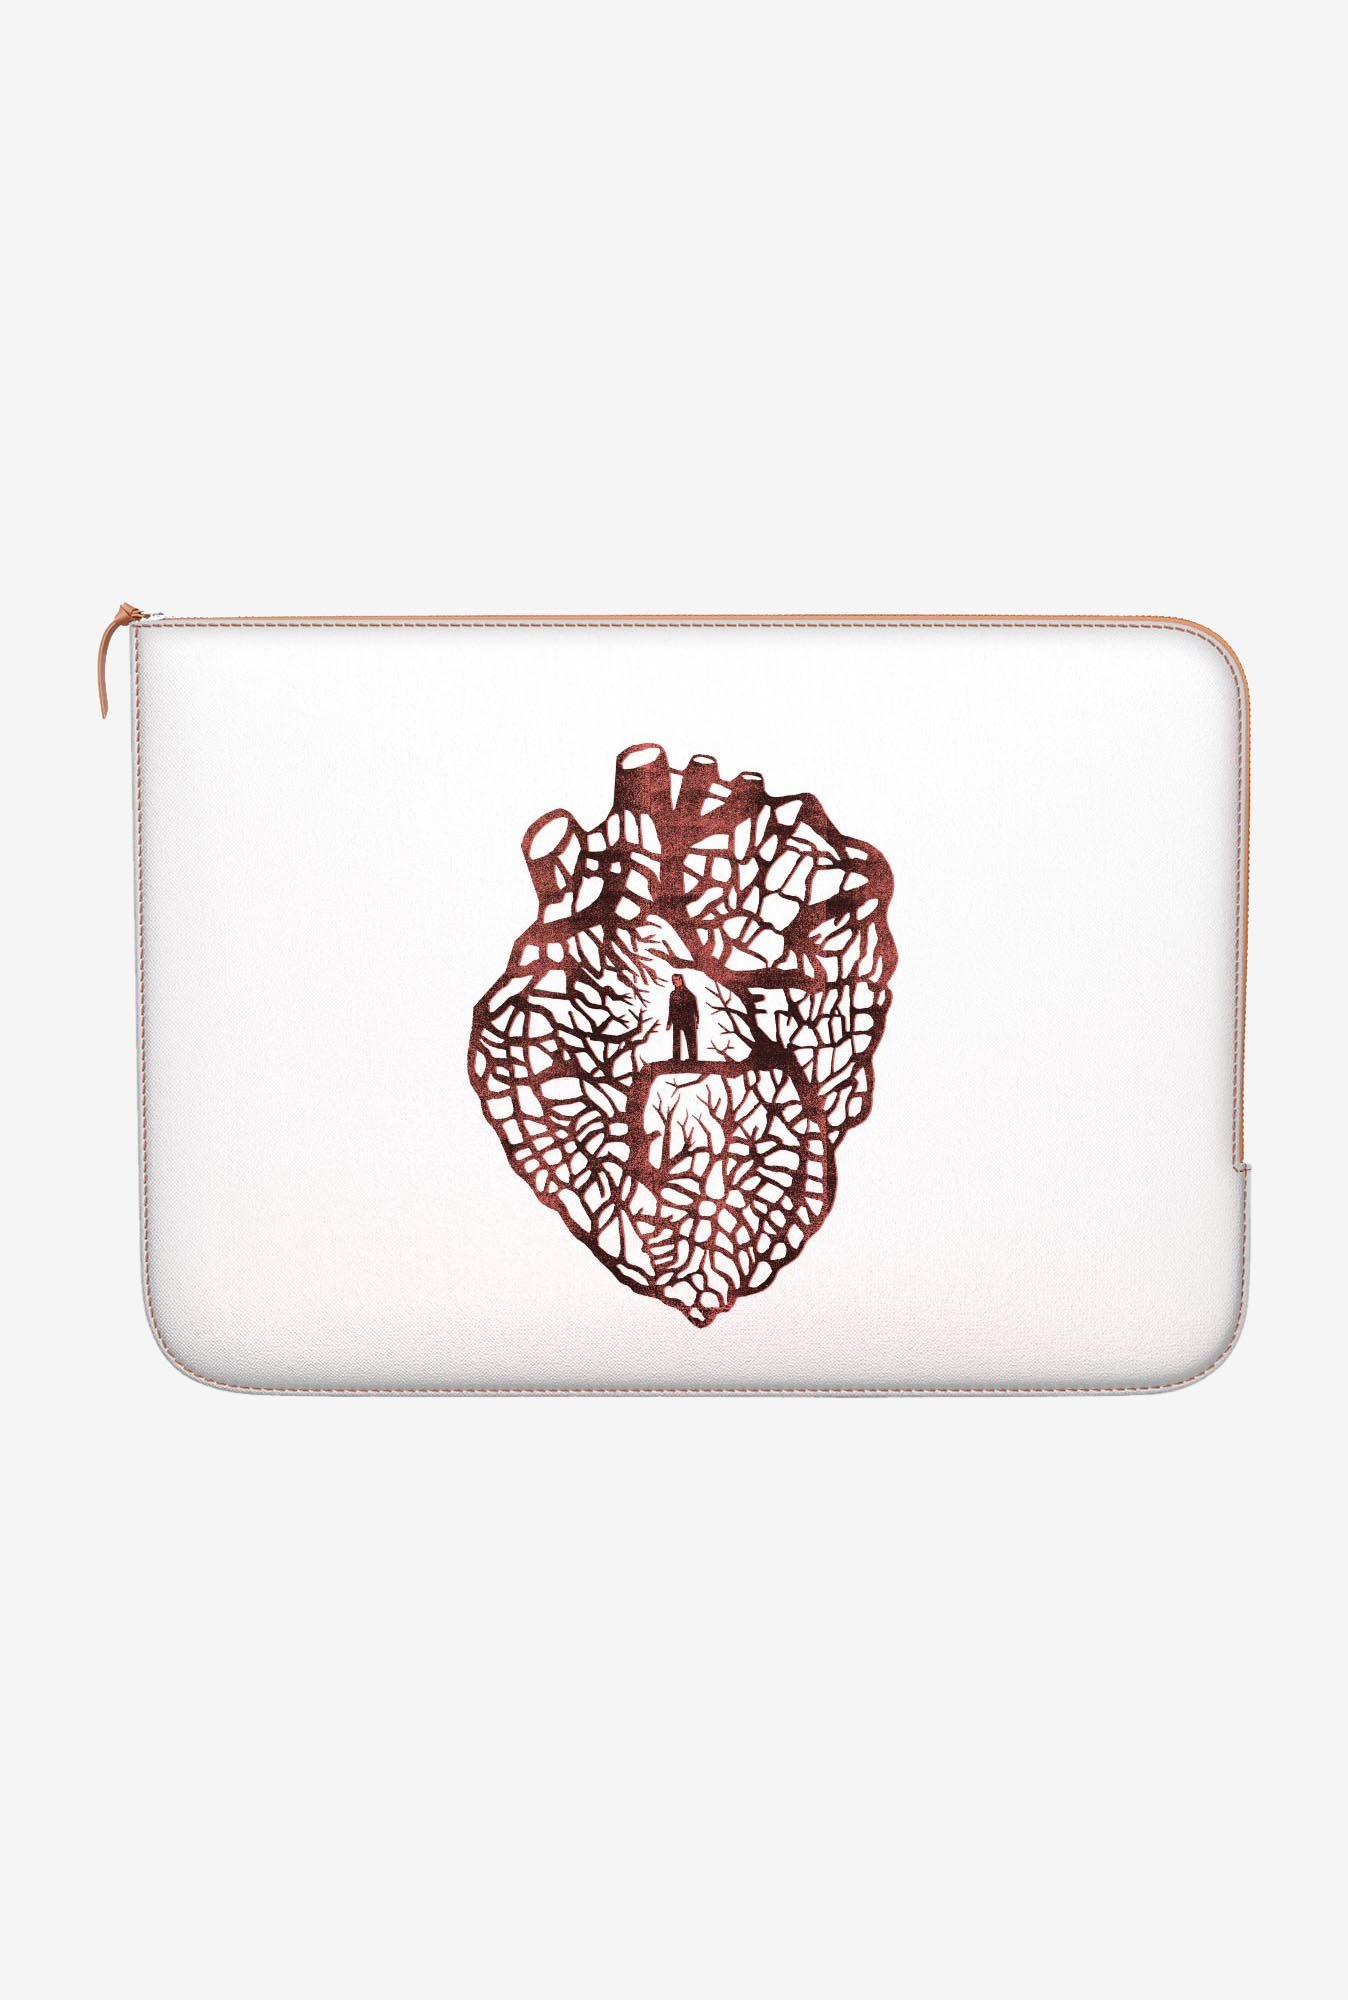 "DailyObjects Maze Heart Macbook Pro 13"" Zippered Sleeve"